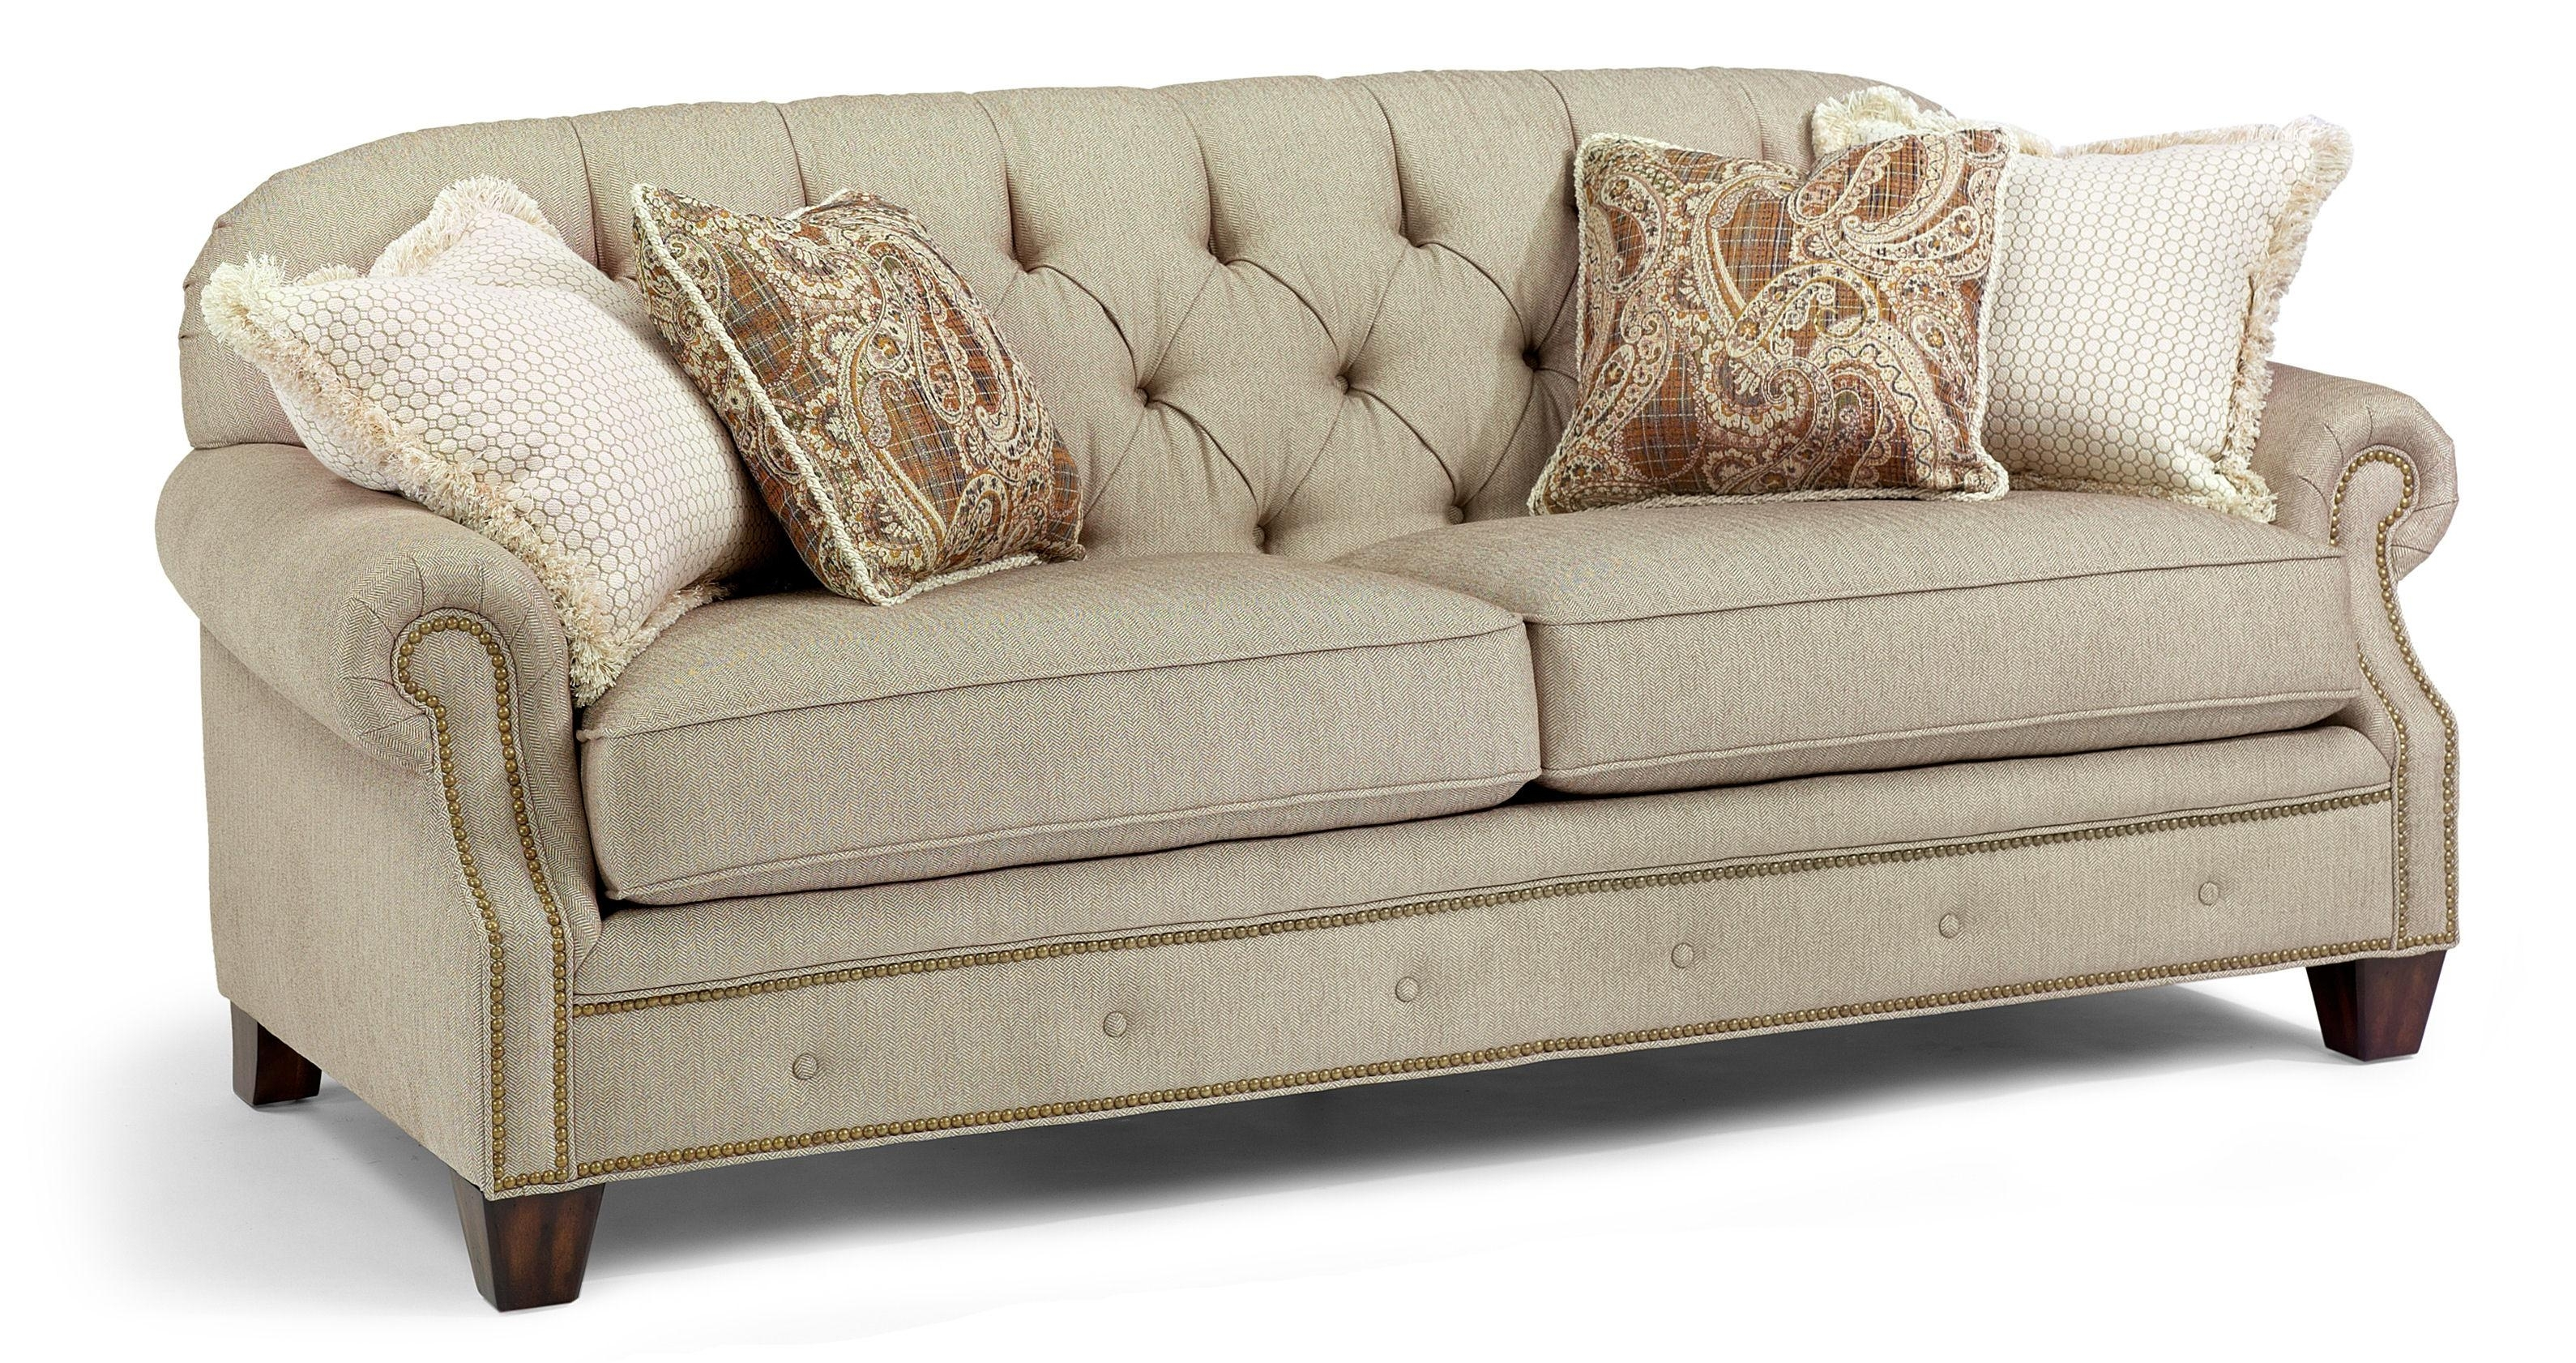 Flexsteel Champion Transitional Button Tufted Sofa With Rolled Arms For Ashley Tufted Sofas (Image 5 of 10)